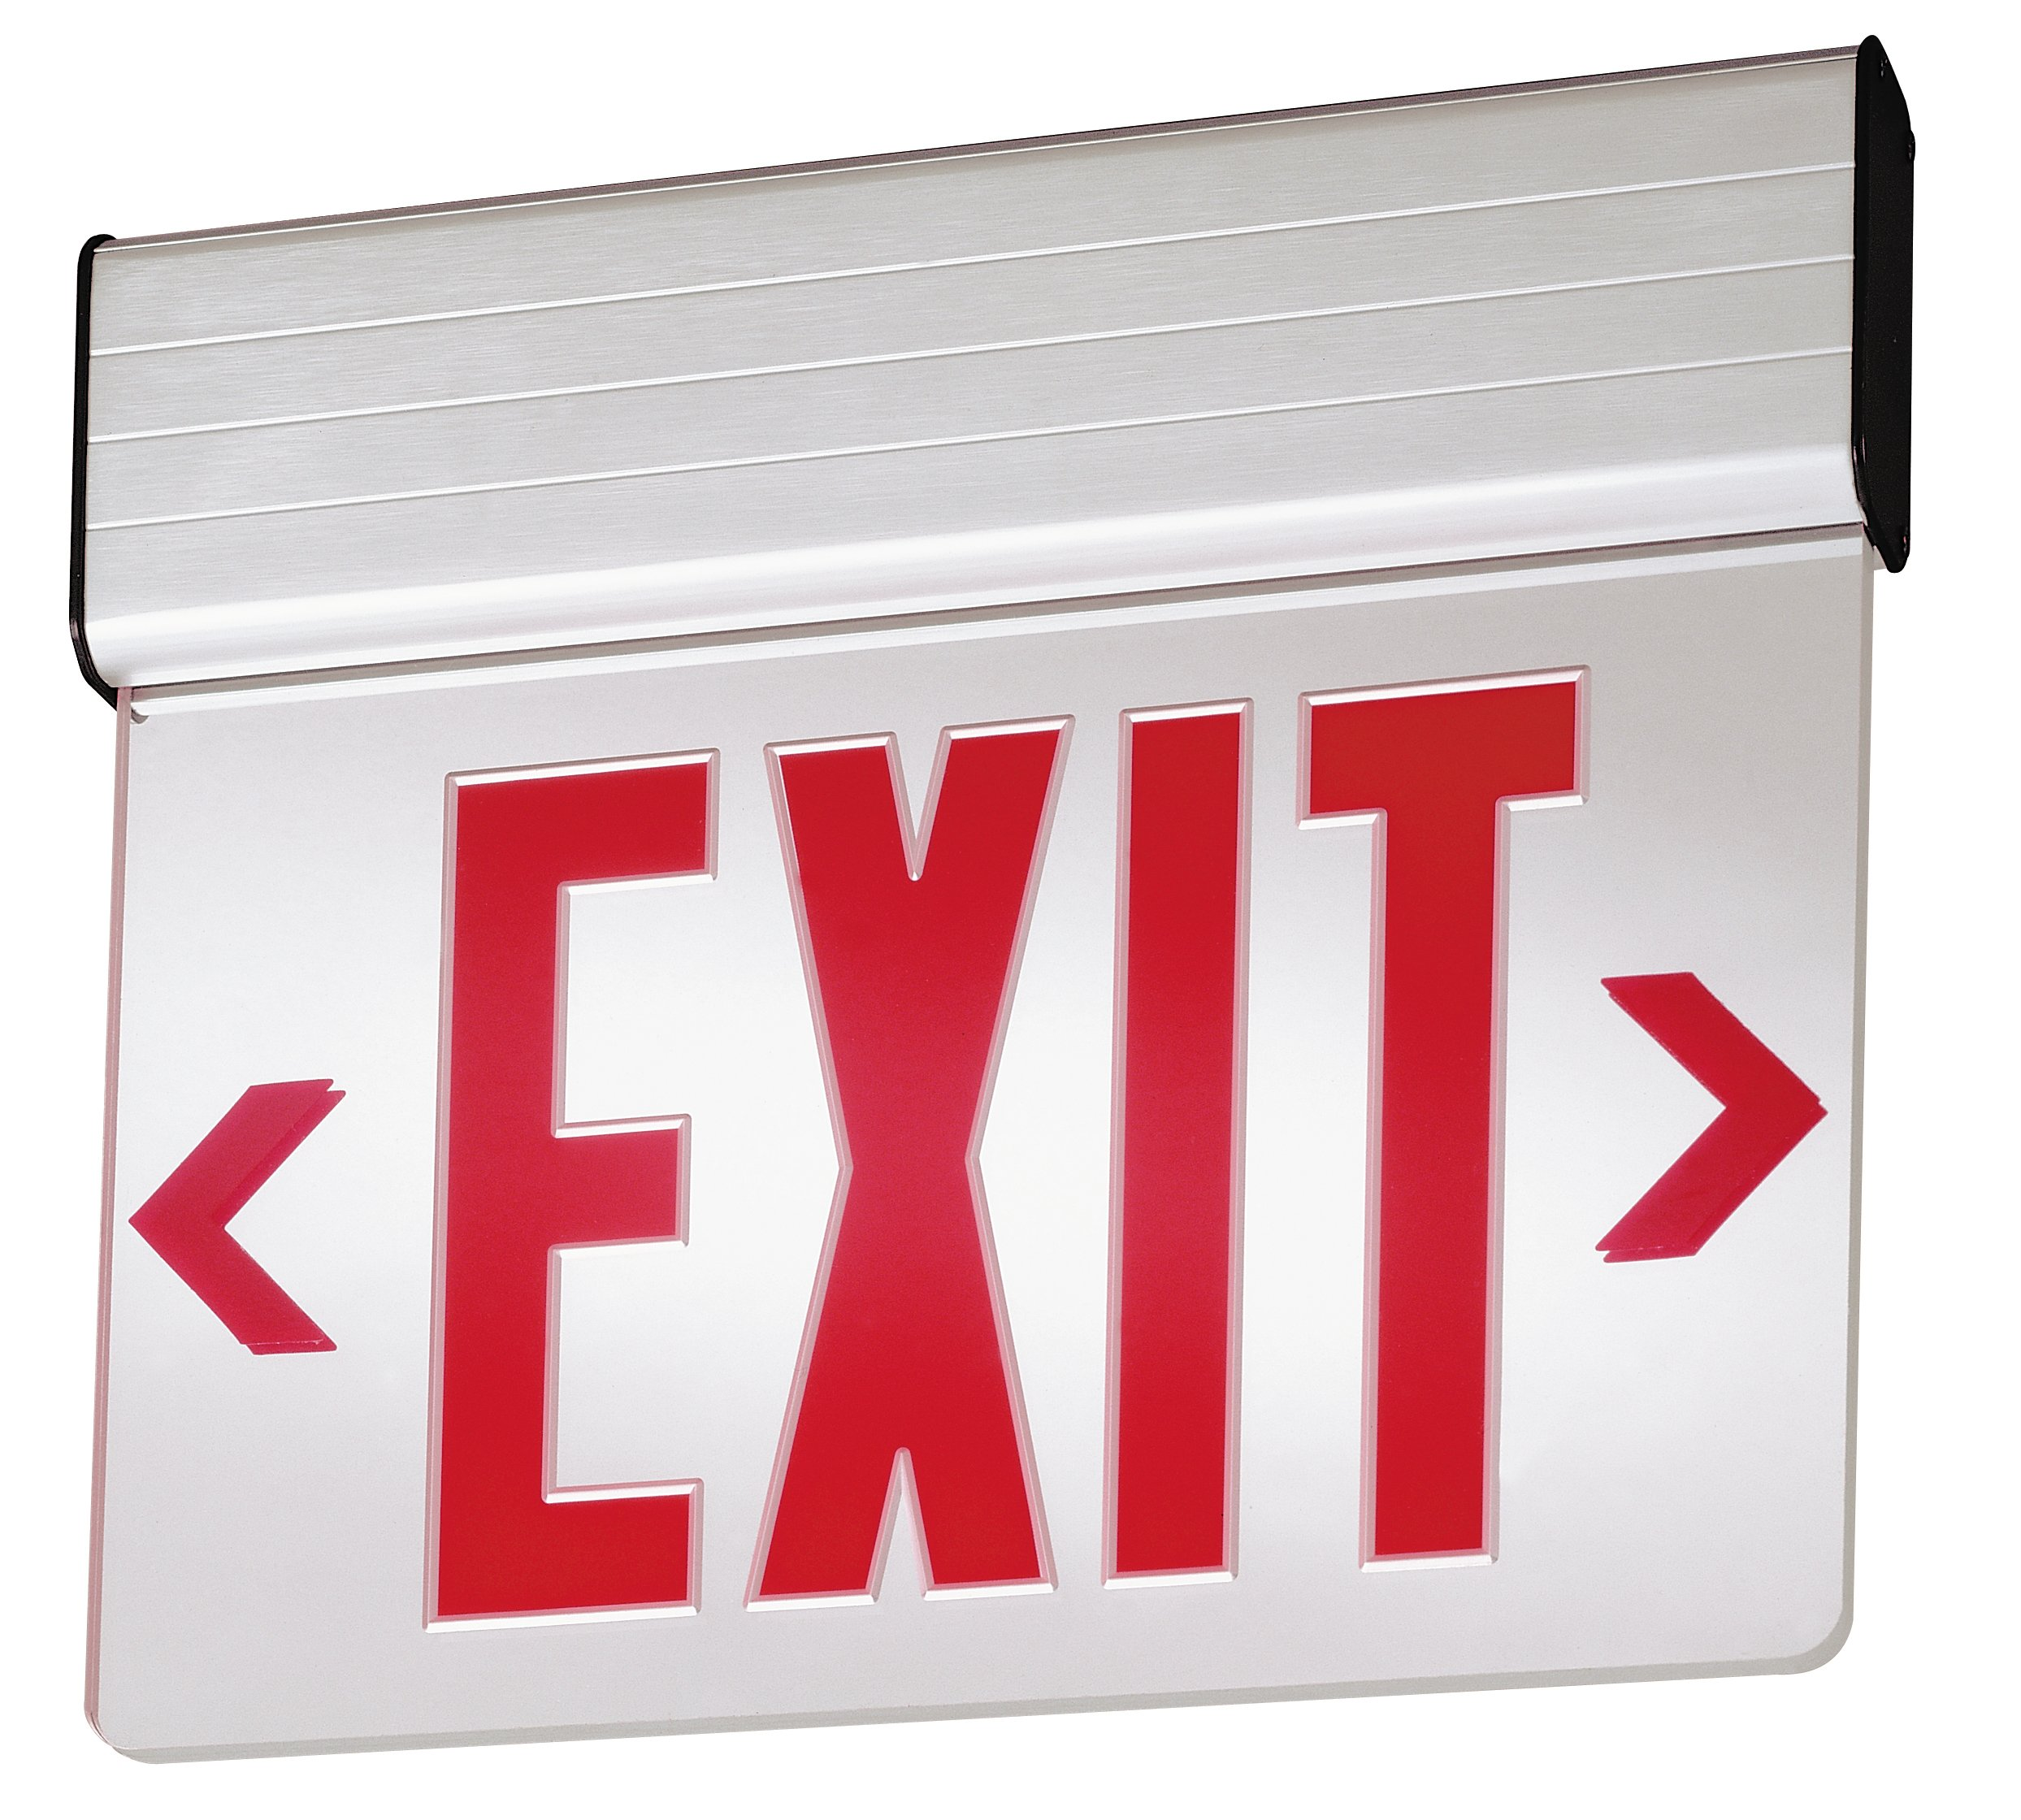 Lithonia Lighting EDG 1 R EL M6 Aluminum LED Emergency Exit Sign